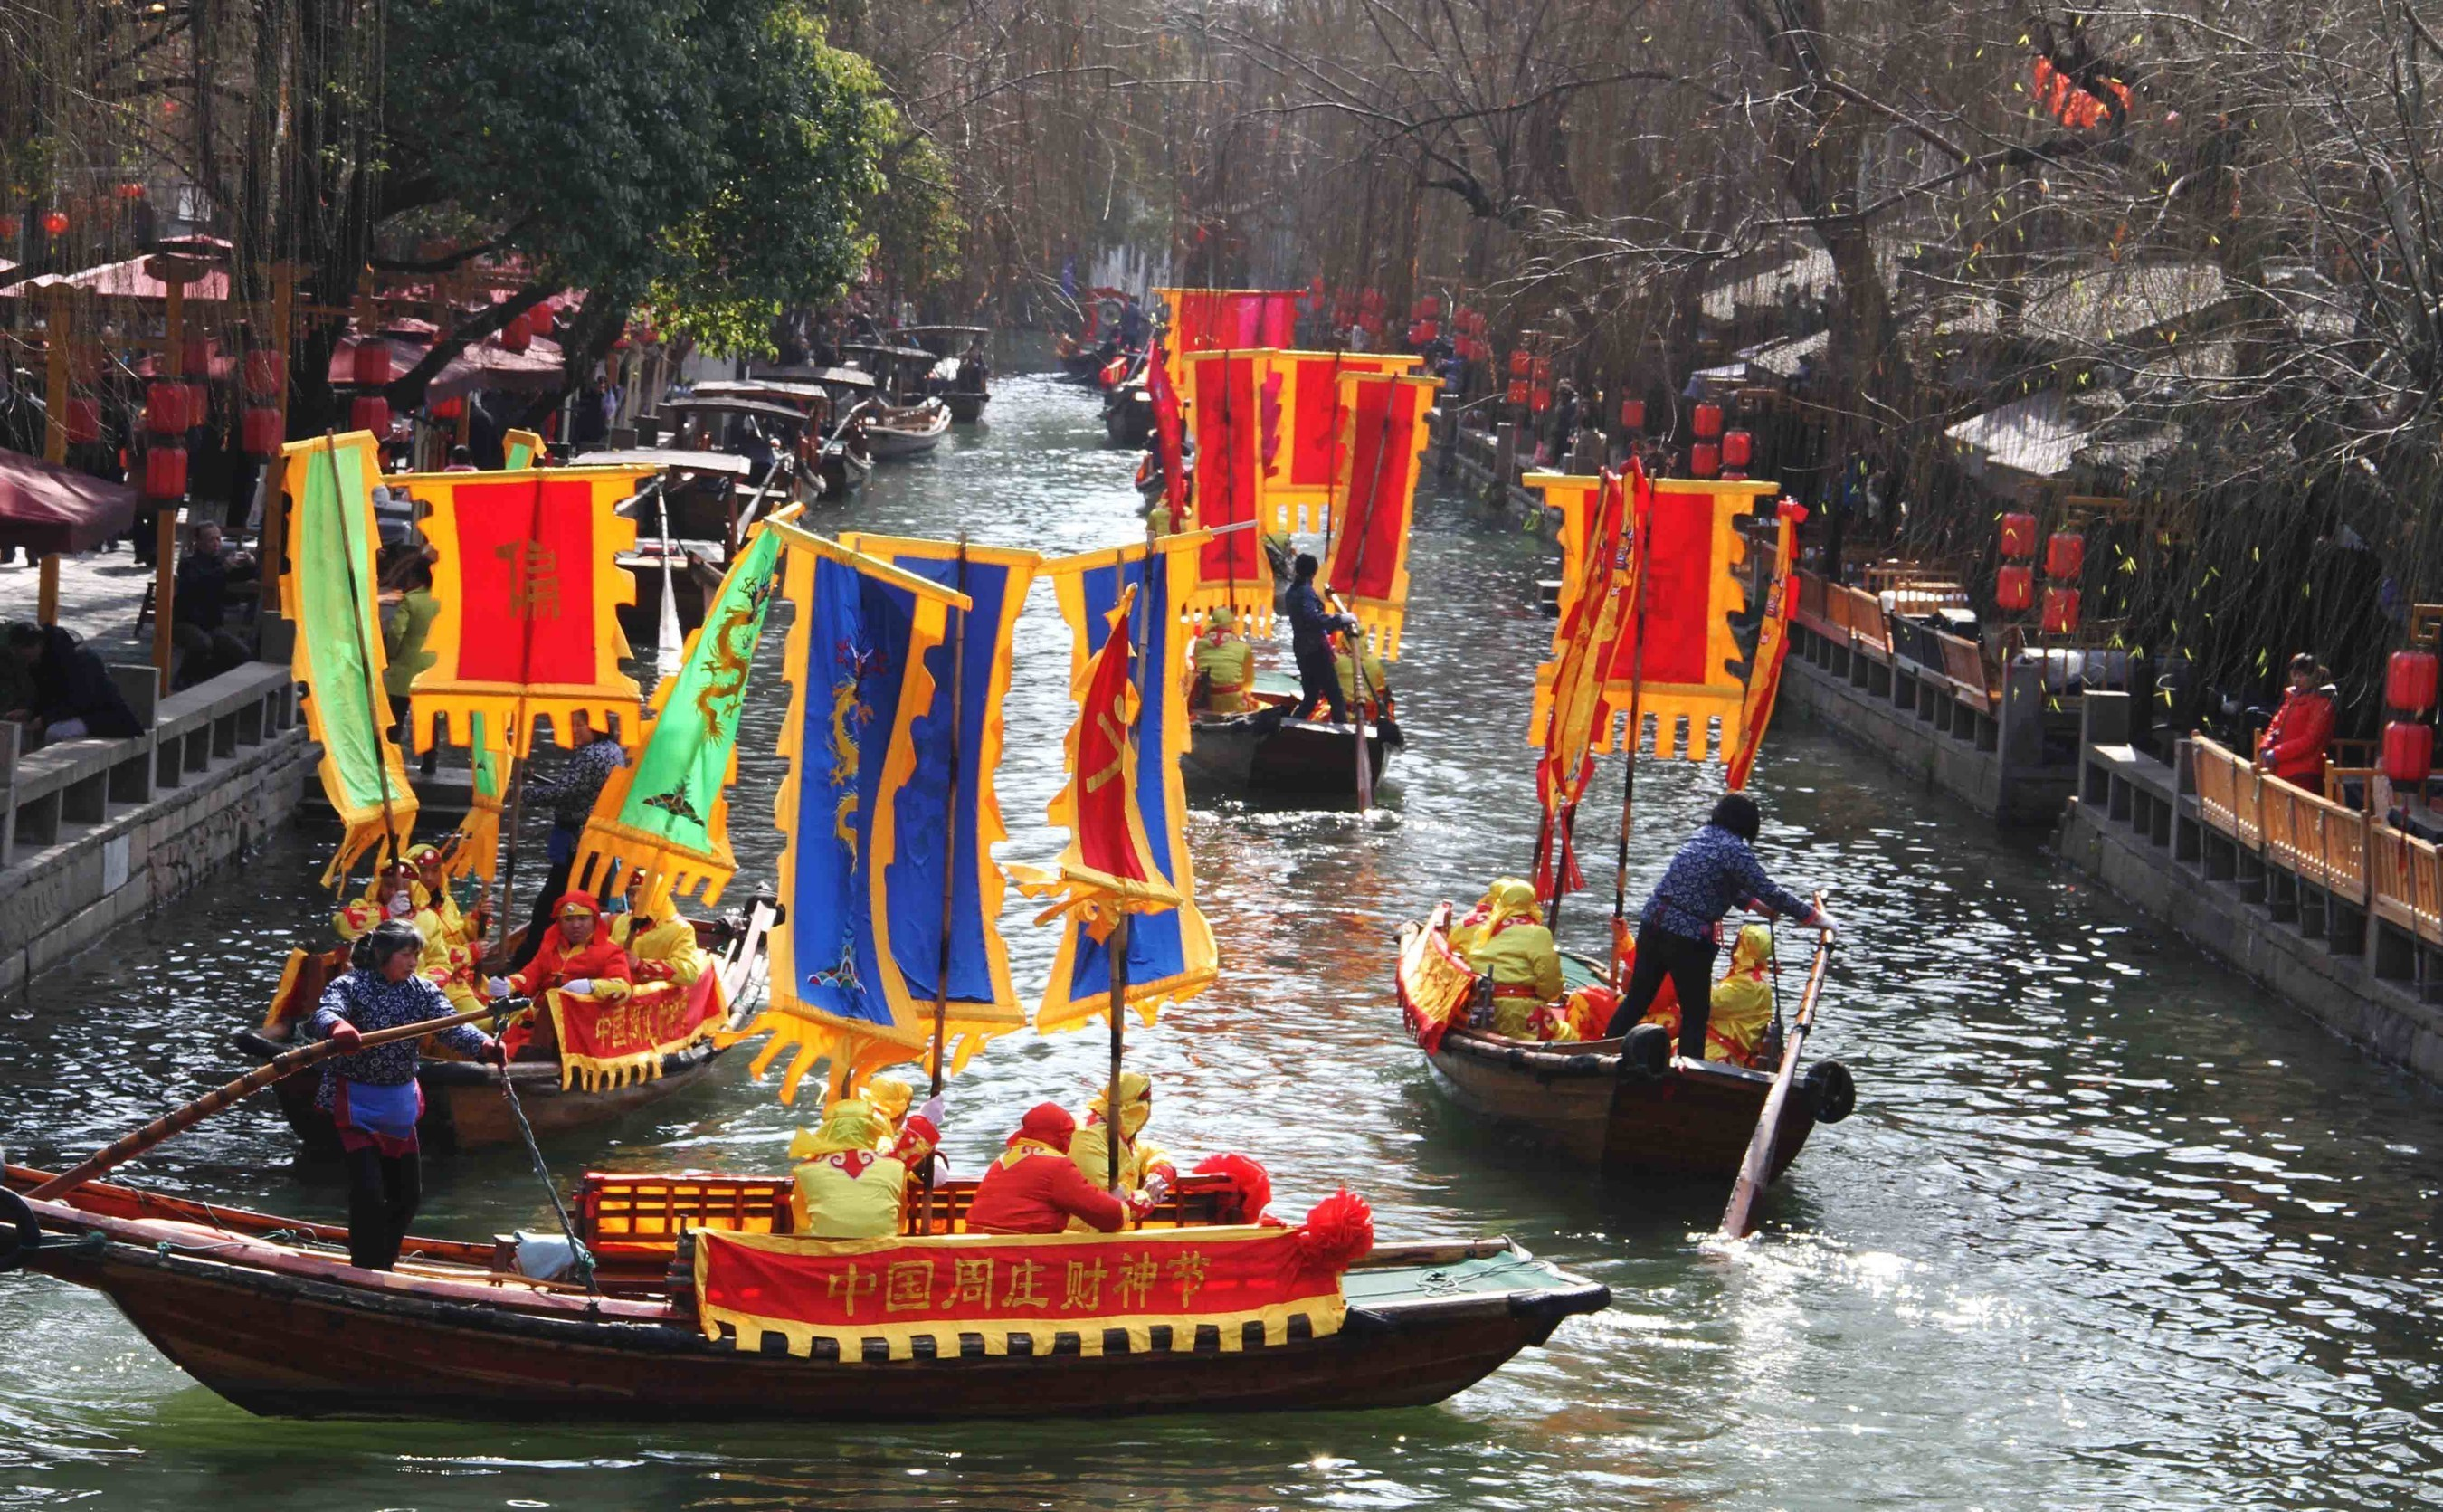 God of Wealth Festival in China's Zhouzhuang